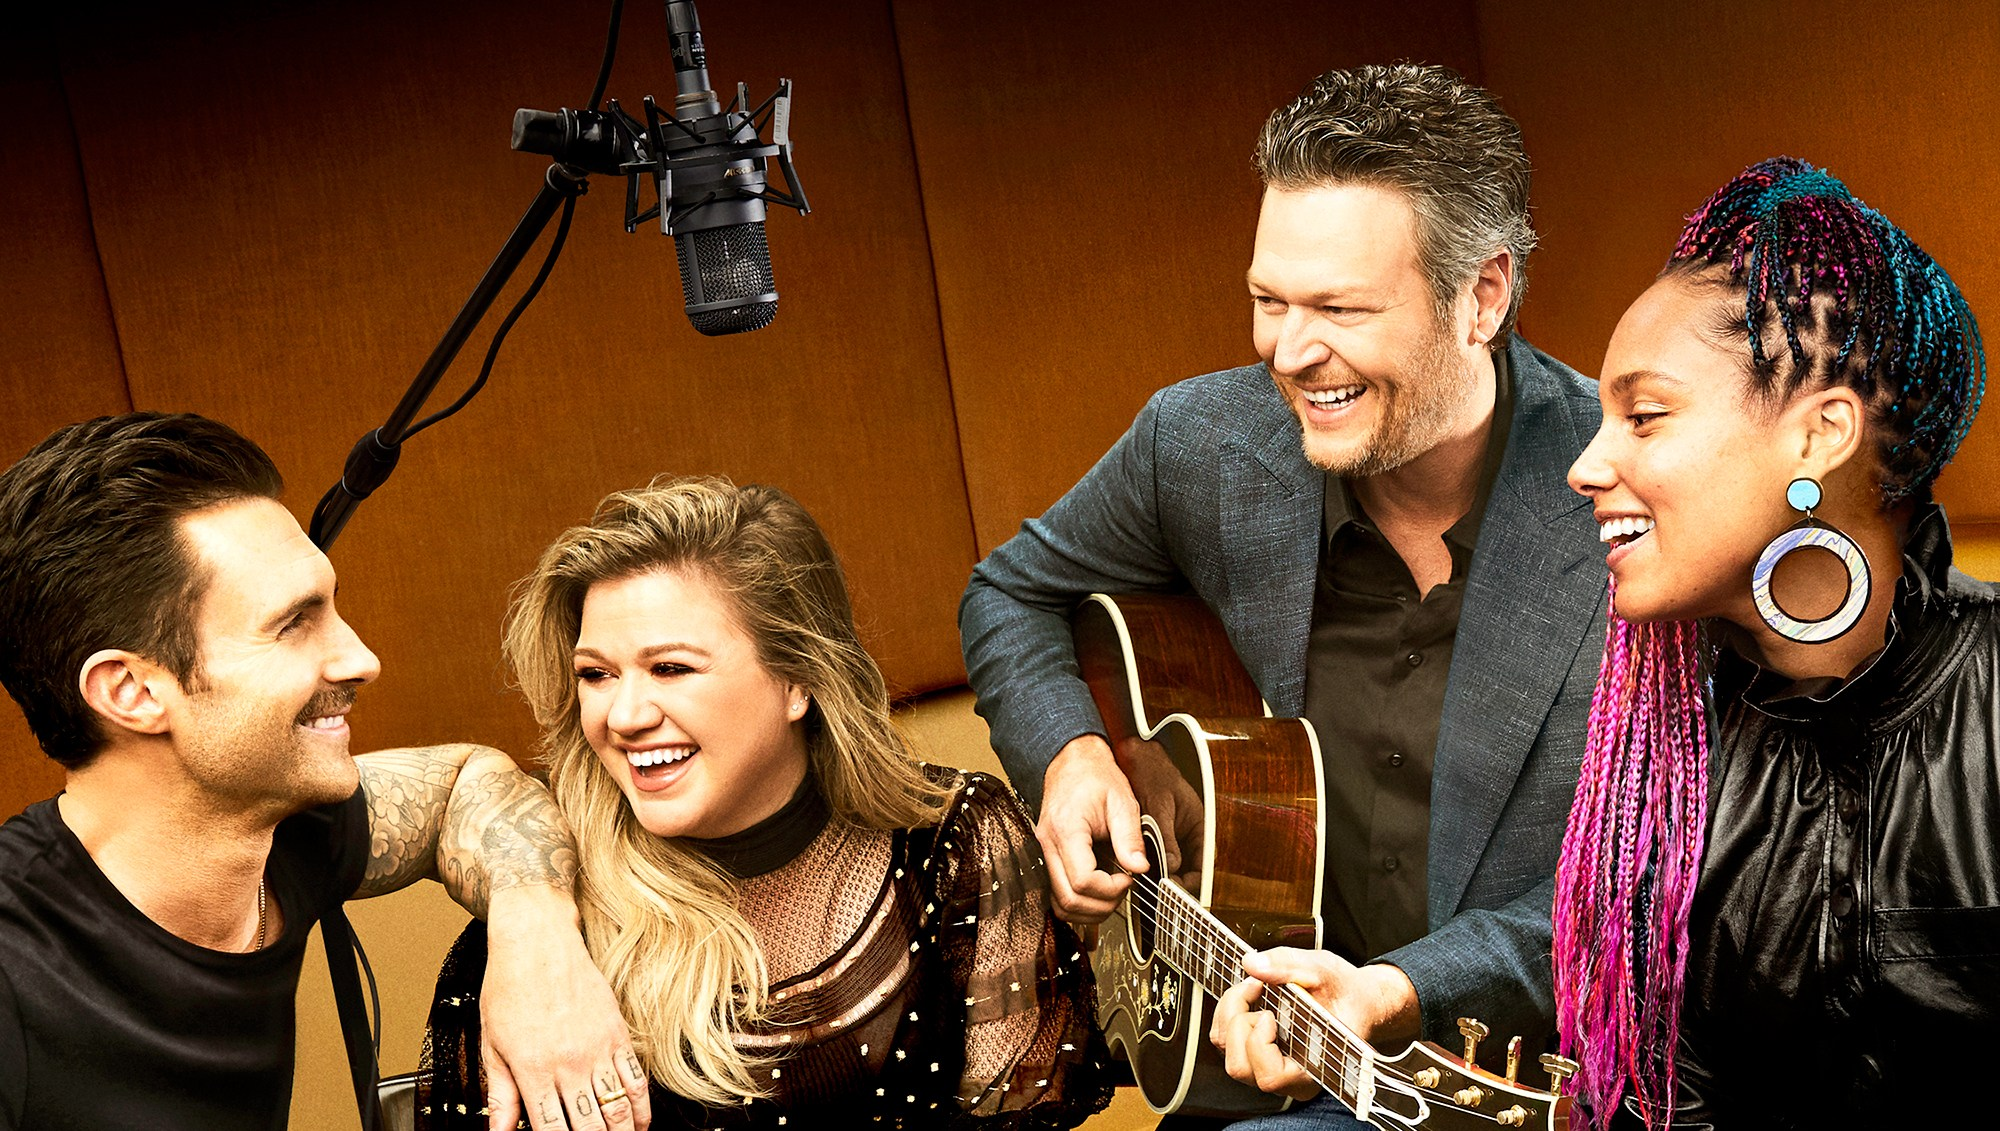 Adam Levine, Kelly Clarkson, Blake Shelton and Alicia Keys on 'The Voice'